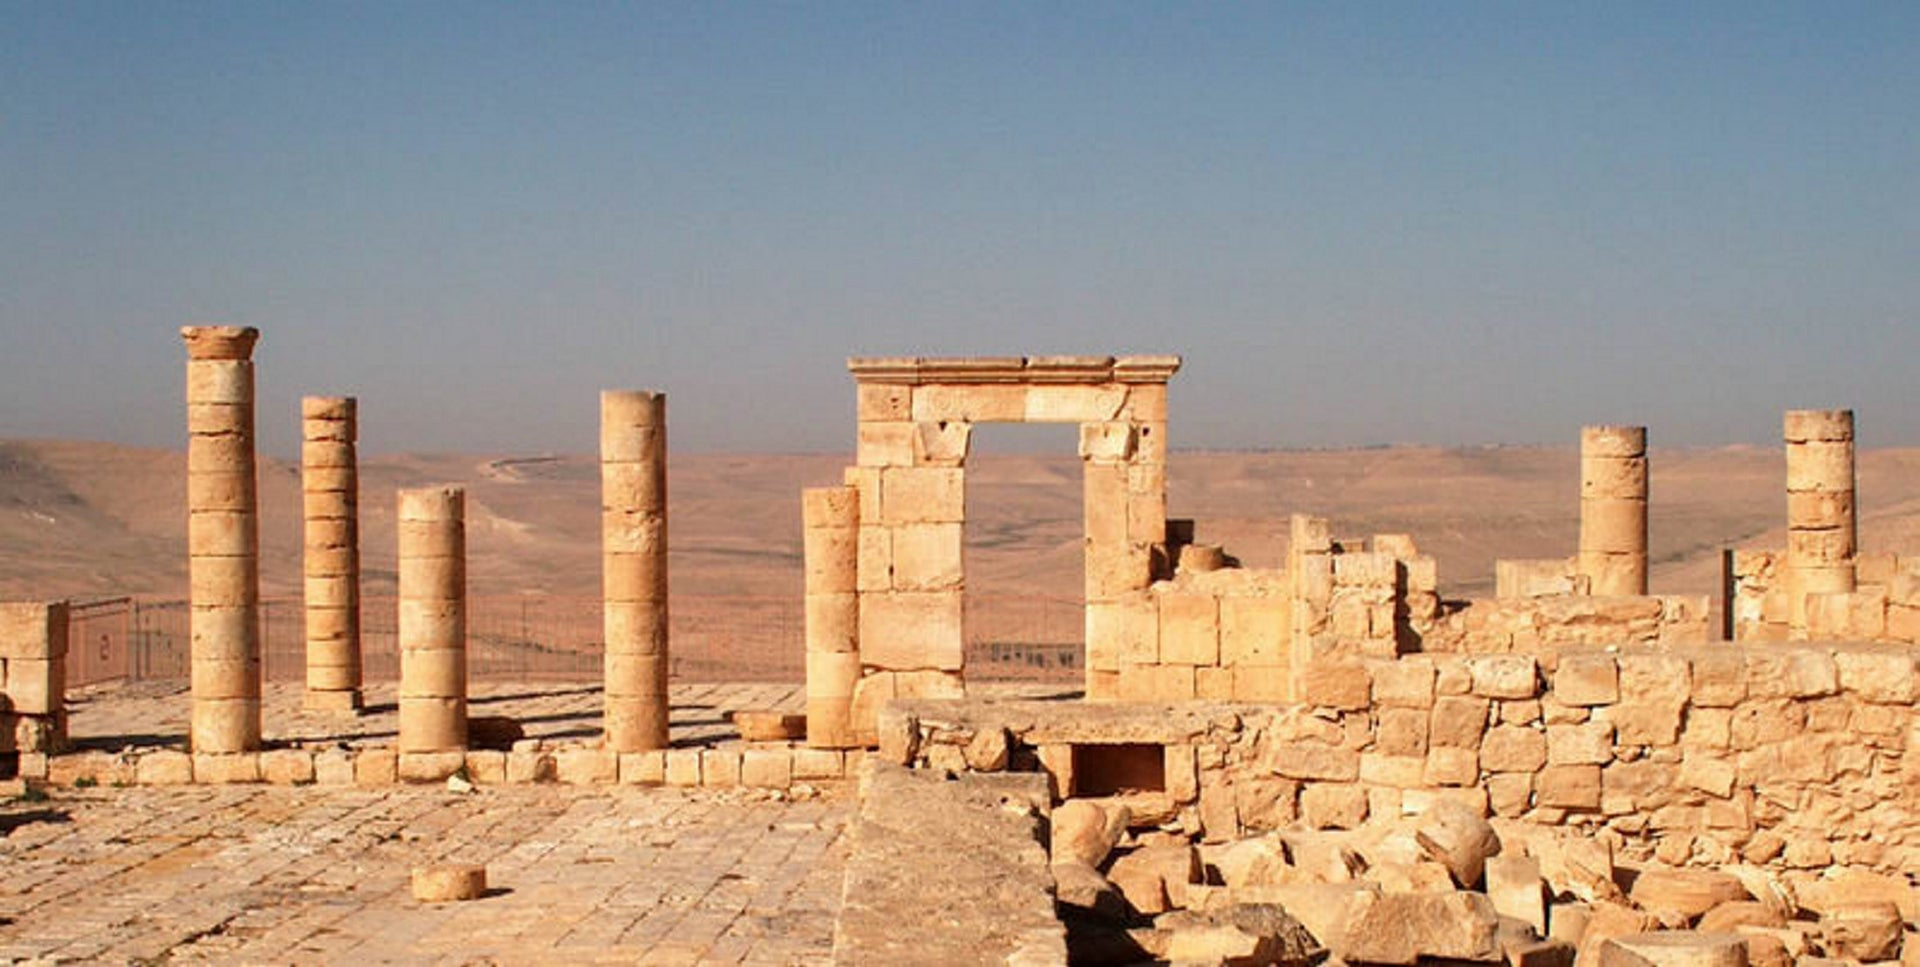 A Nabatean temple in the Negev